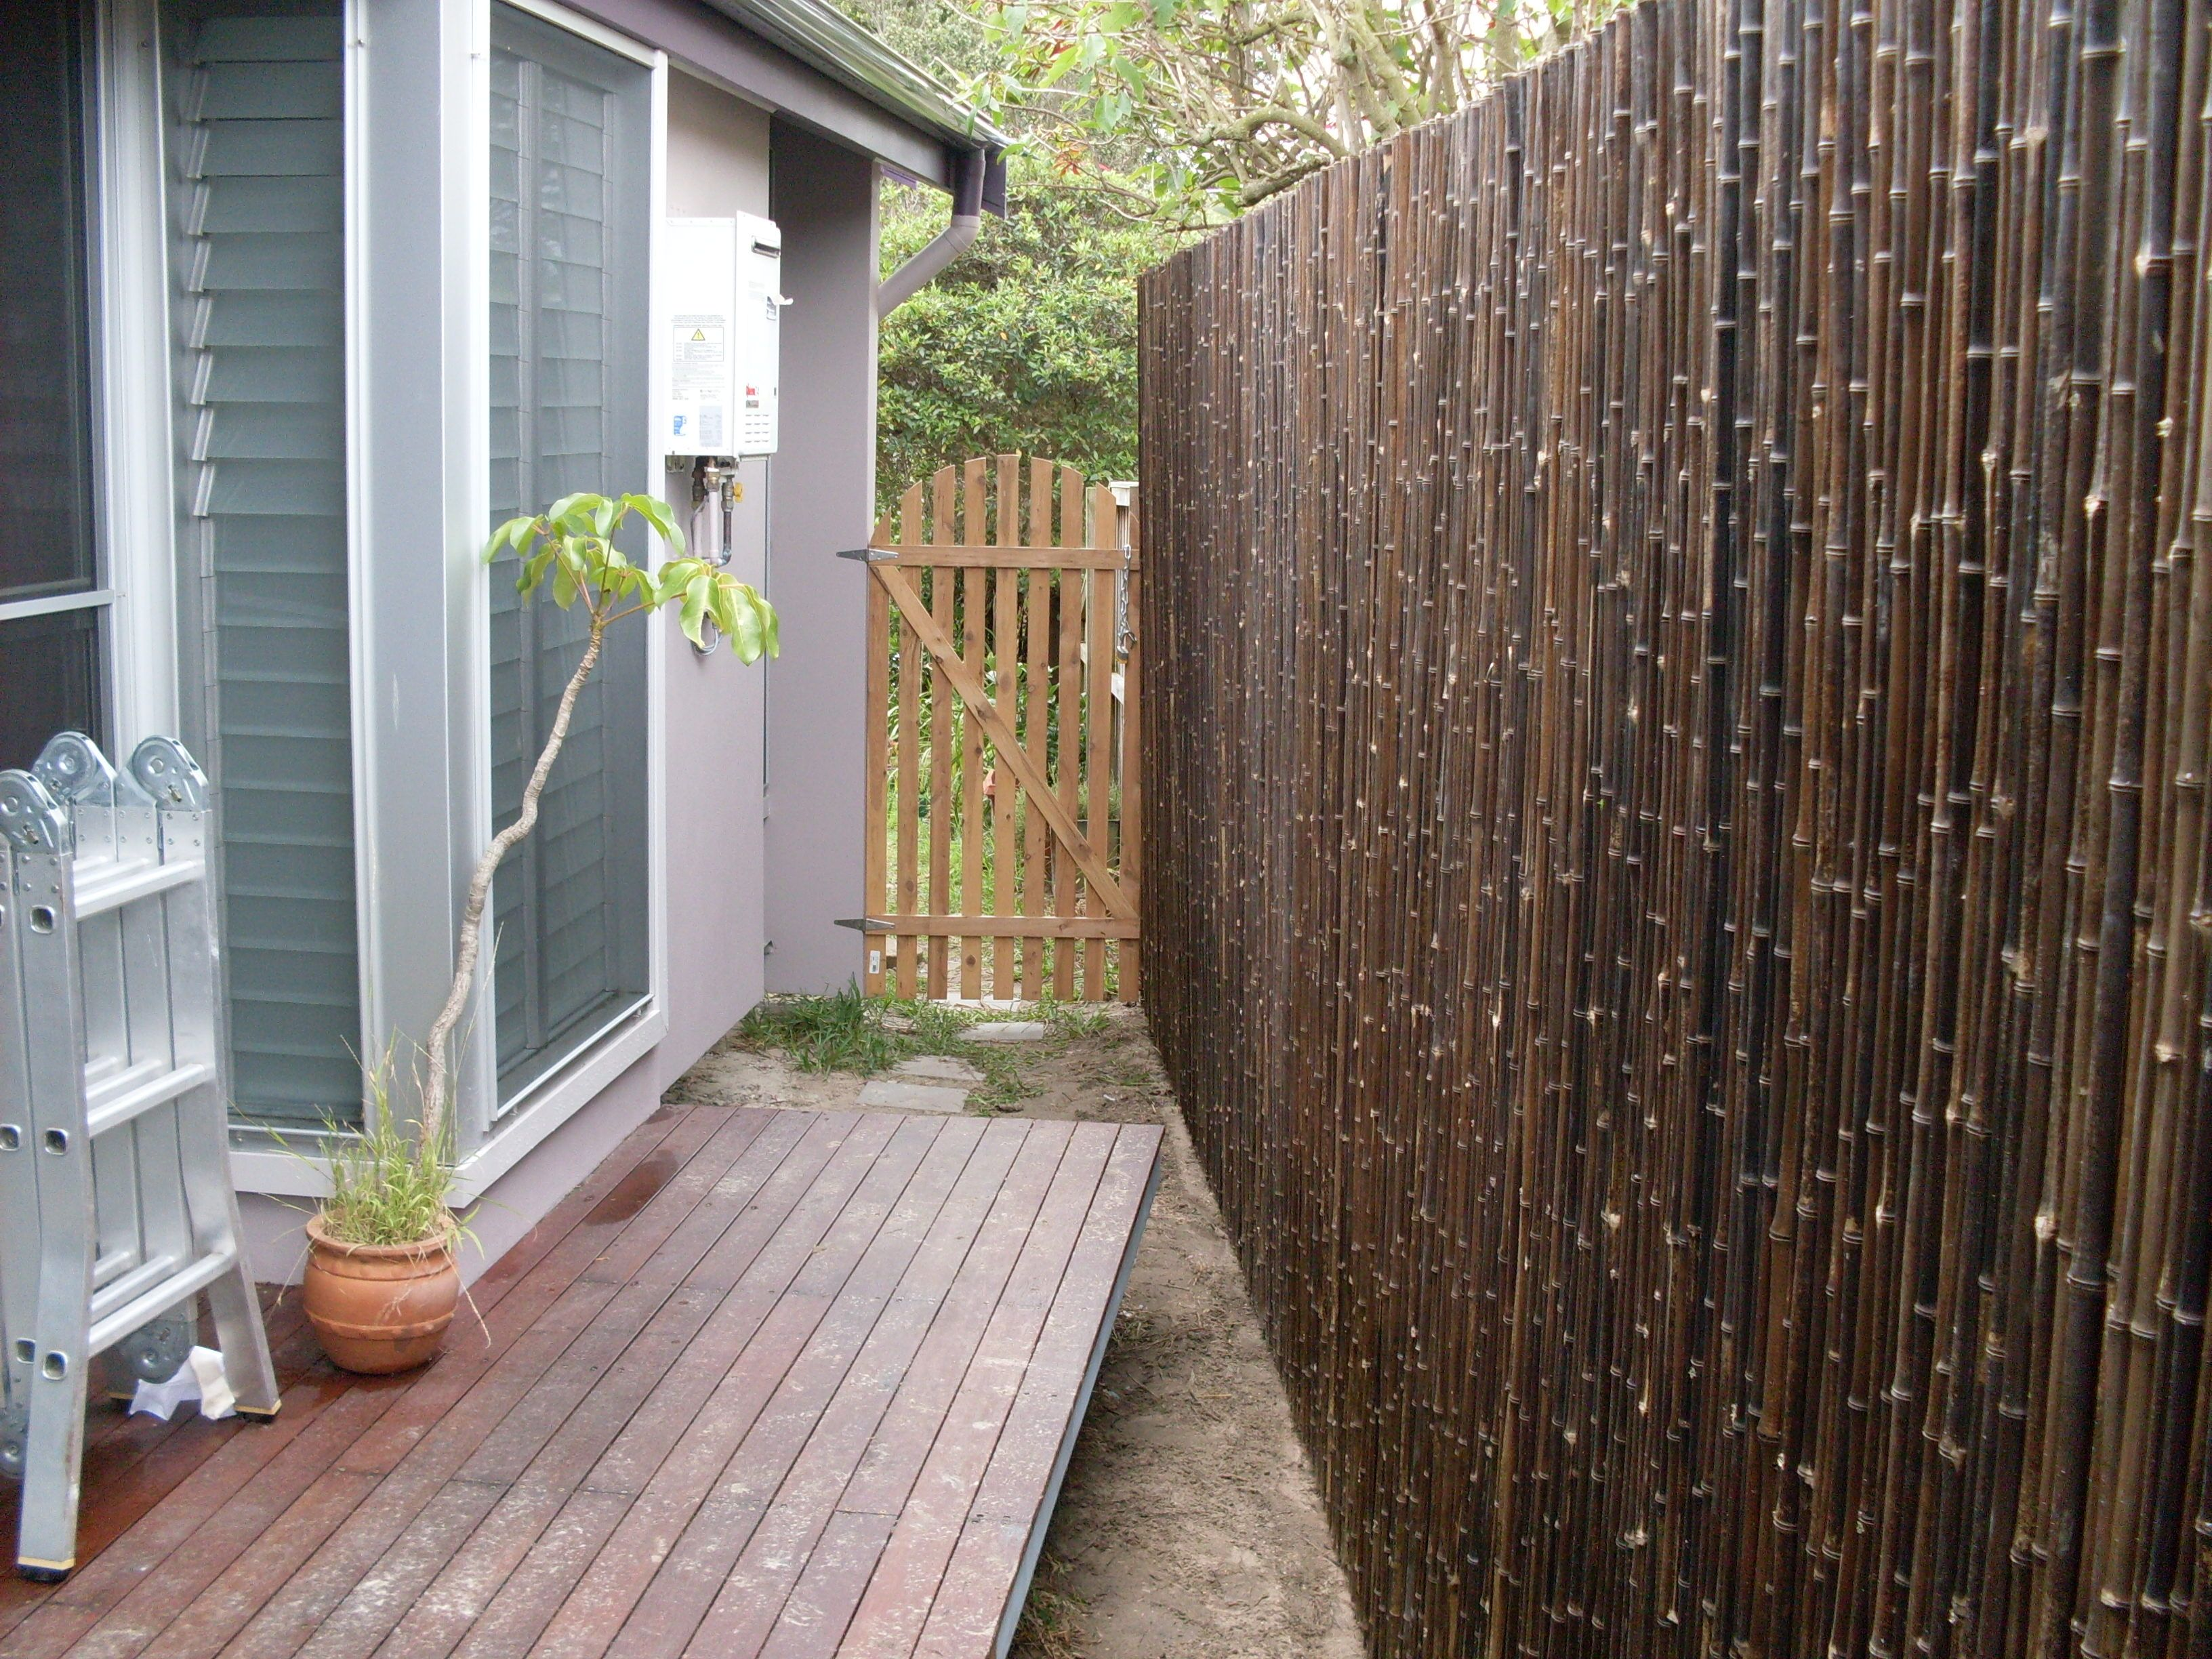 Fencing And Screening Bamboo Privacy Screens Paneling Fencing Sydney House Of Bamboo Bamboo Fence Bamboo Privacy Sydney House